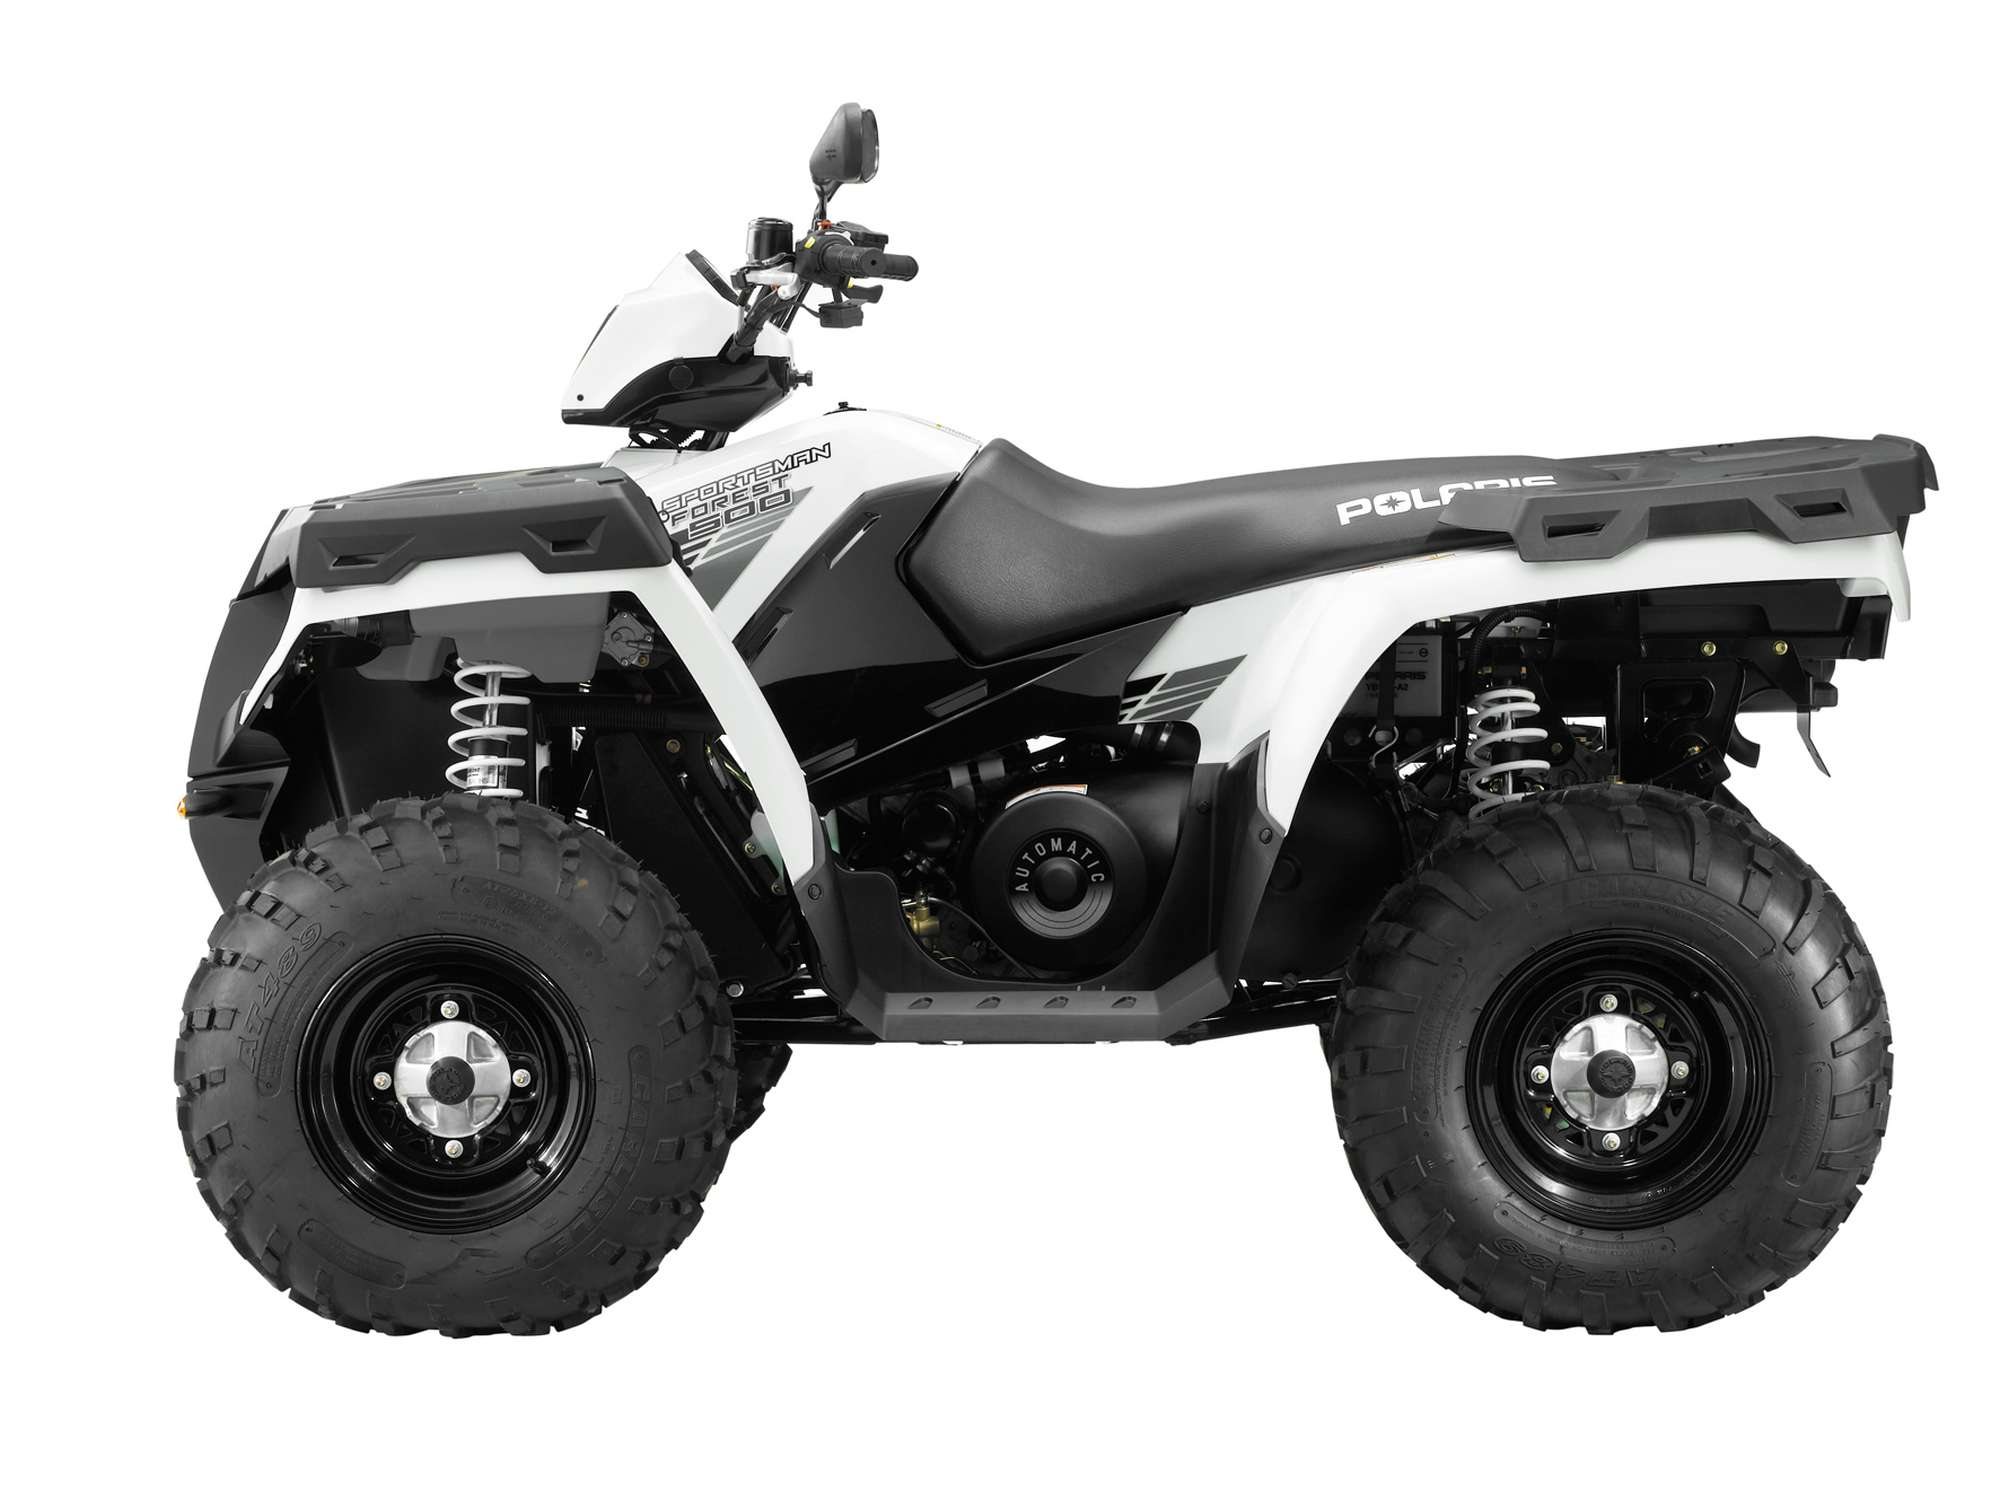 2013 polaris sportsman 500 ho atv specs reviews prices html autos weblog. Black Bedroom Furniture Sets. Home Design Ideas